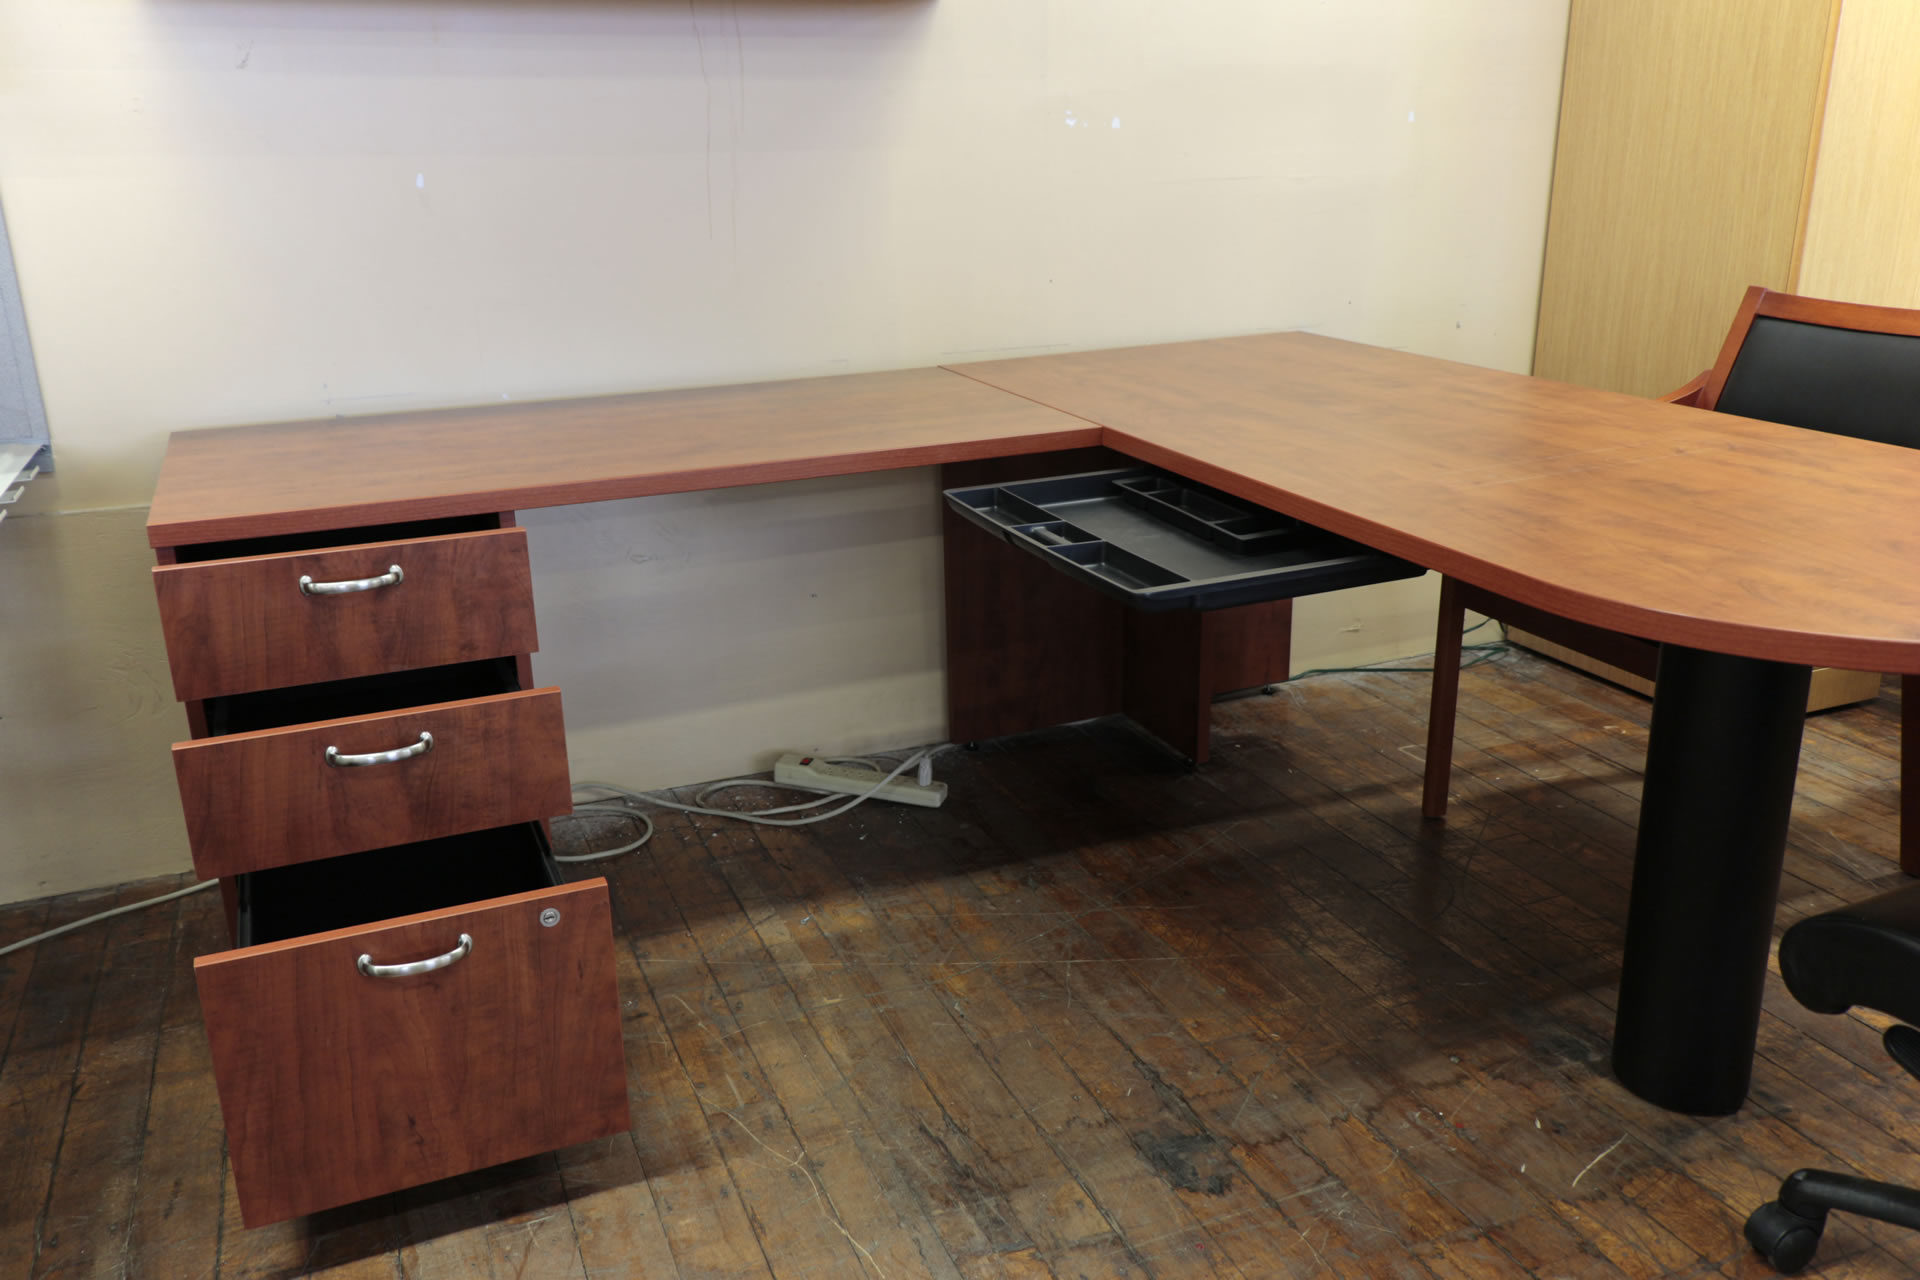 peartreeofficefurniture_peartreeofficefurniture_mg_4704.jpg